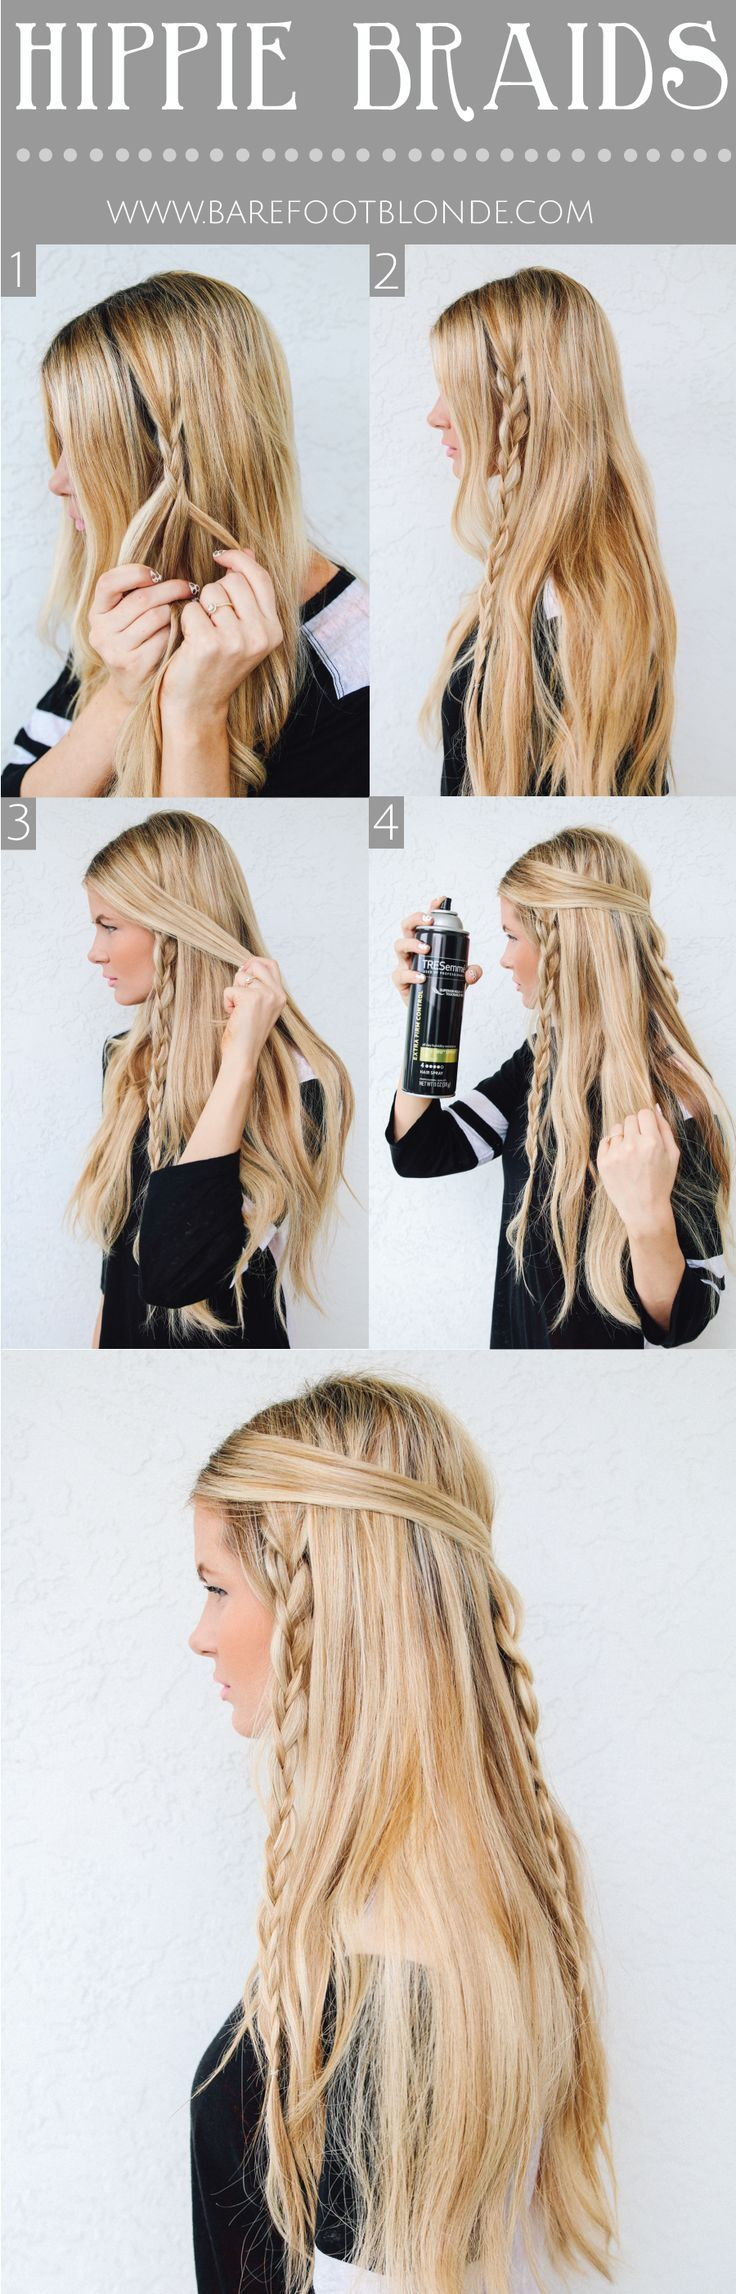 Messy Braided Hairstyle Tutorial